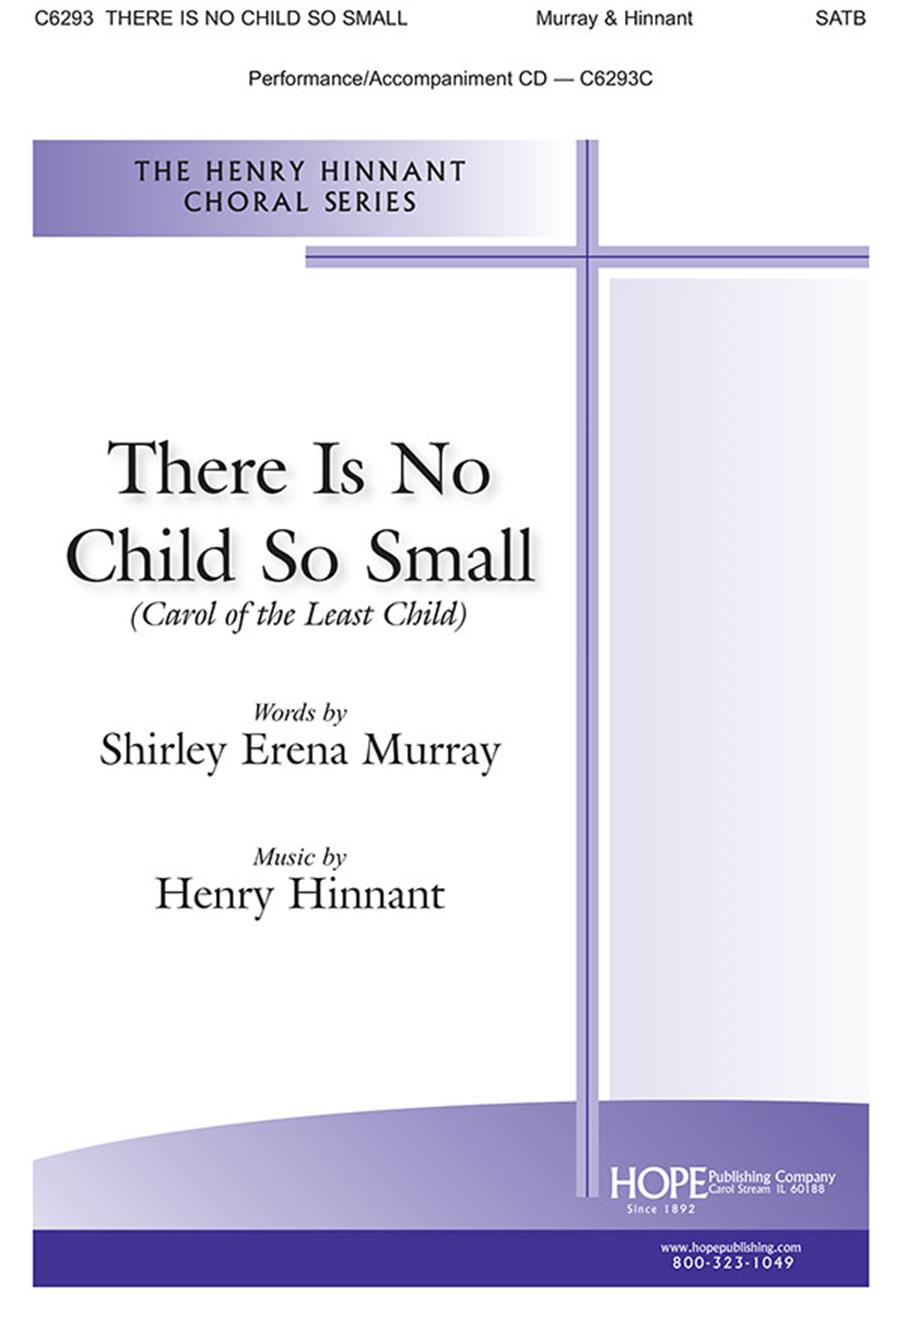 There Is No Small Child - SATB Cover Image